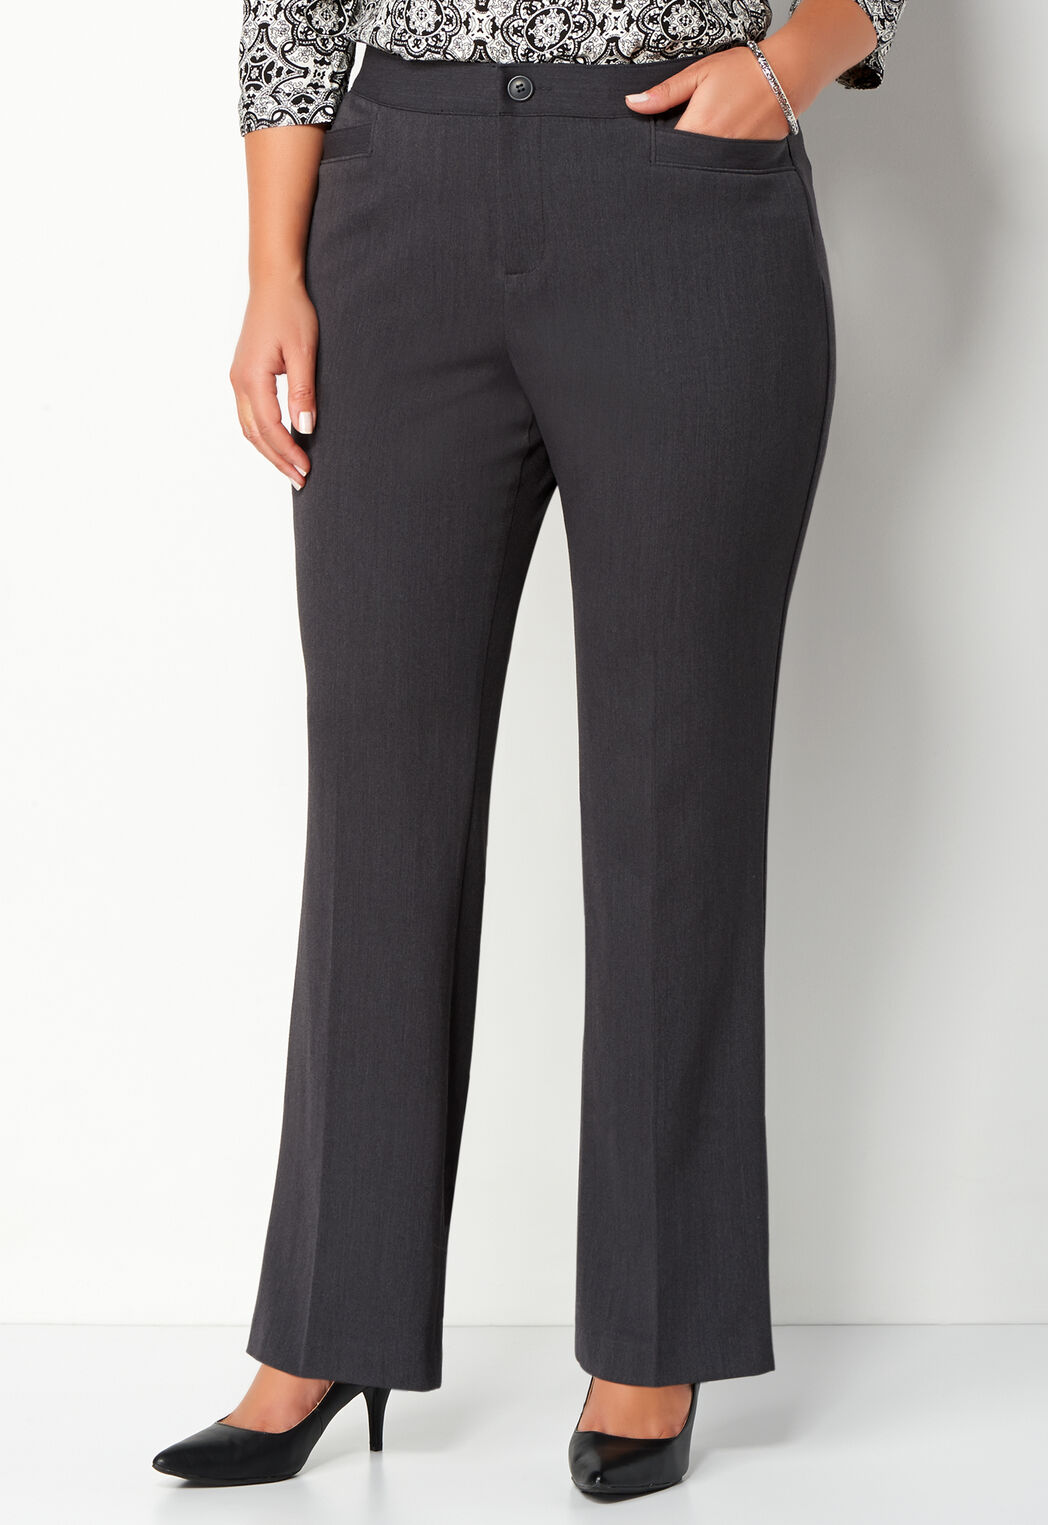 50cbb8f6e43f4 Women s Plus Size Classic Fit Downtown Trouser Tall from Christopher ...